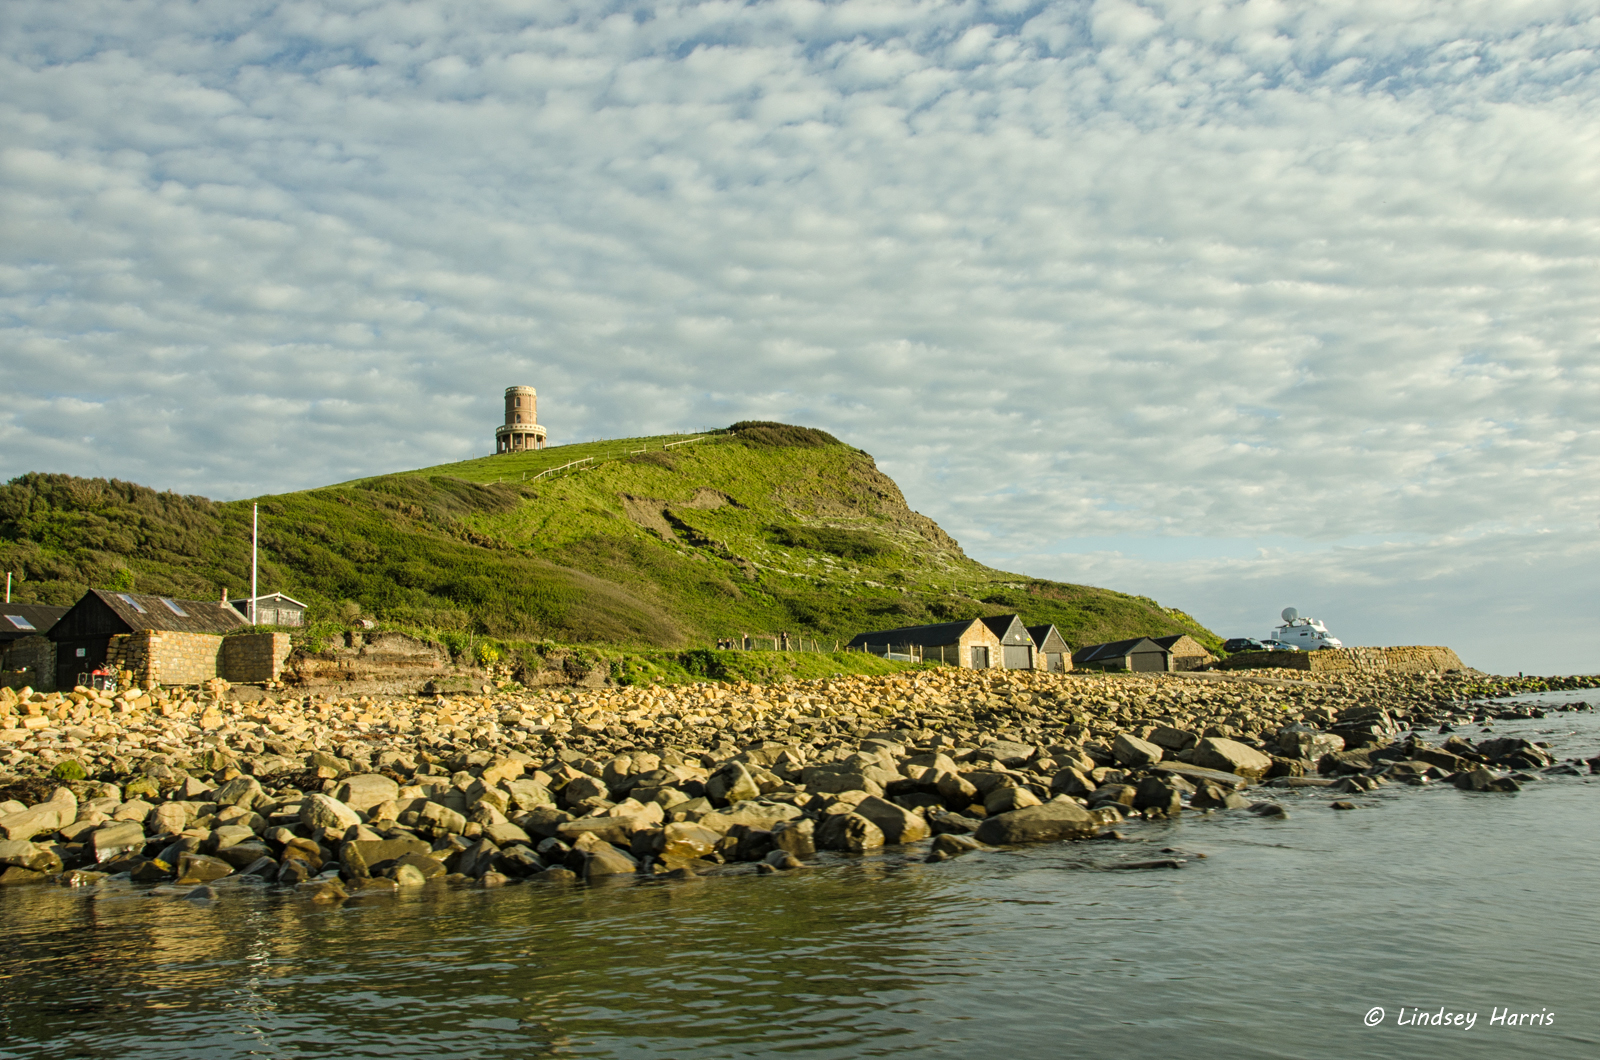 Clavell Tower, Kimmeridge, Dorset